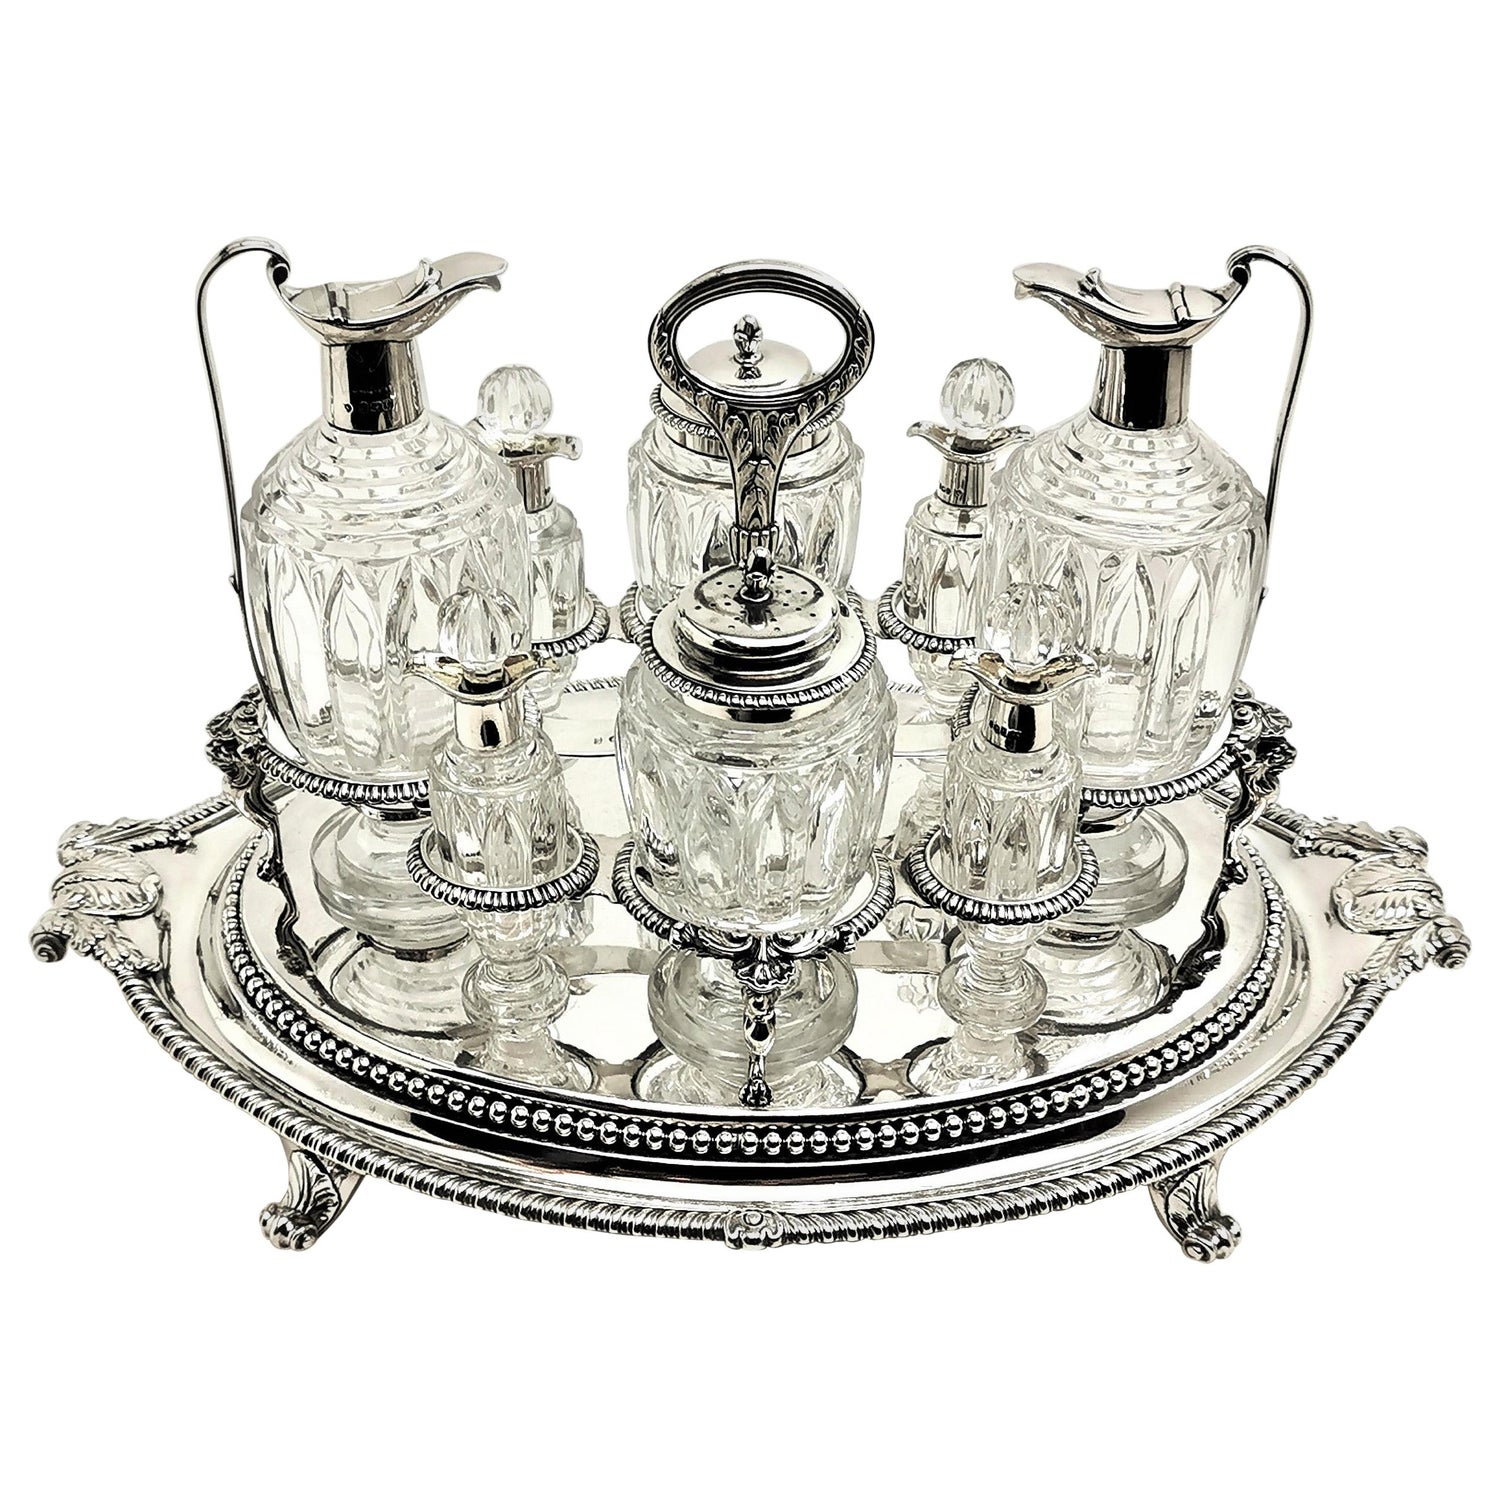 Rare Paul Storr Antique Georgian Silver & Class Cruet Stand Condiment Set 1806